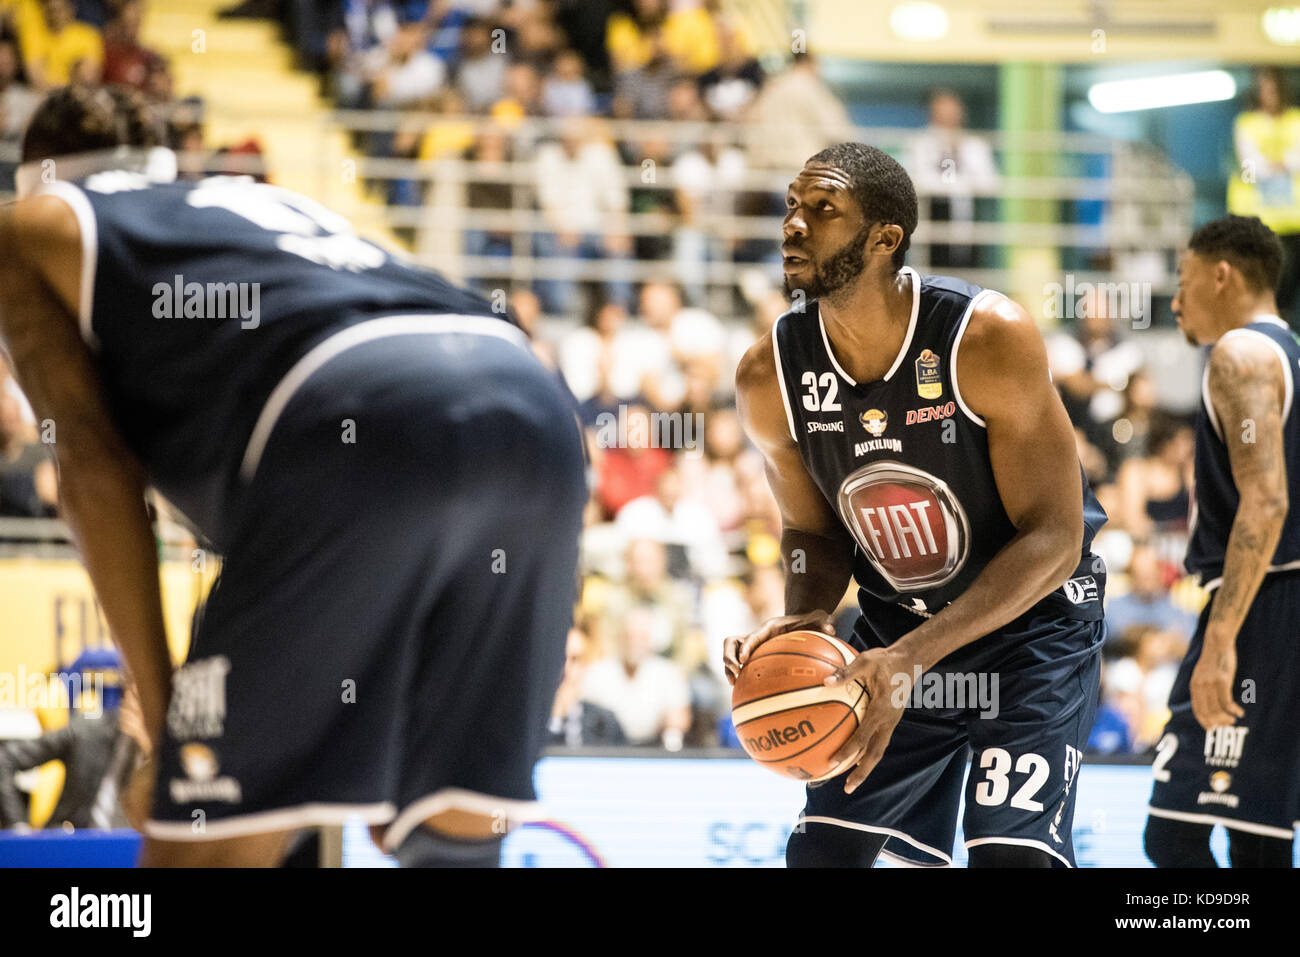 Turin, Italy 7th october 2017. Trevor Mbakwe during the Serie A an Basketball match Fiat Torino Auxilium vs Dinamo Stock Photo